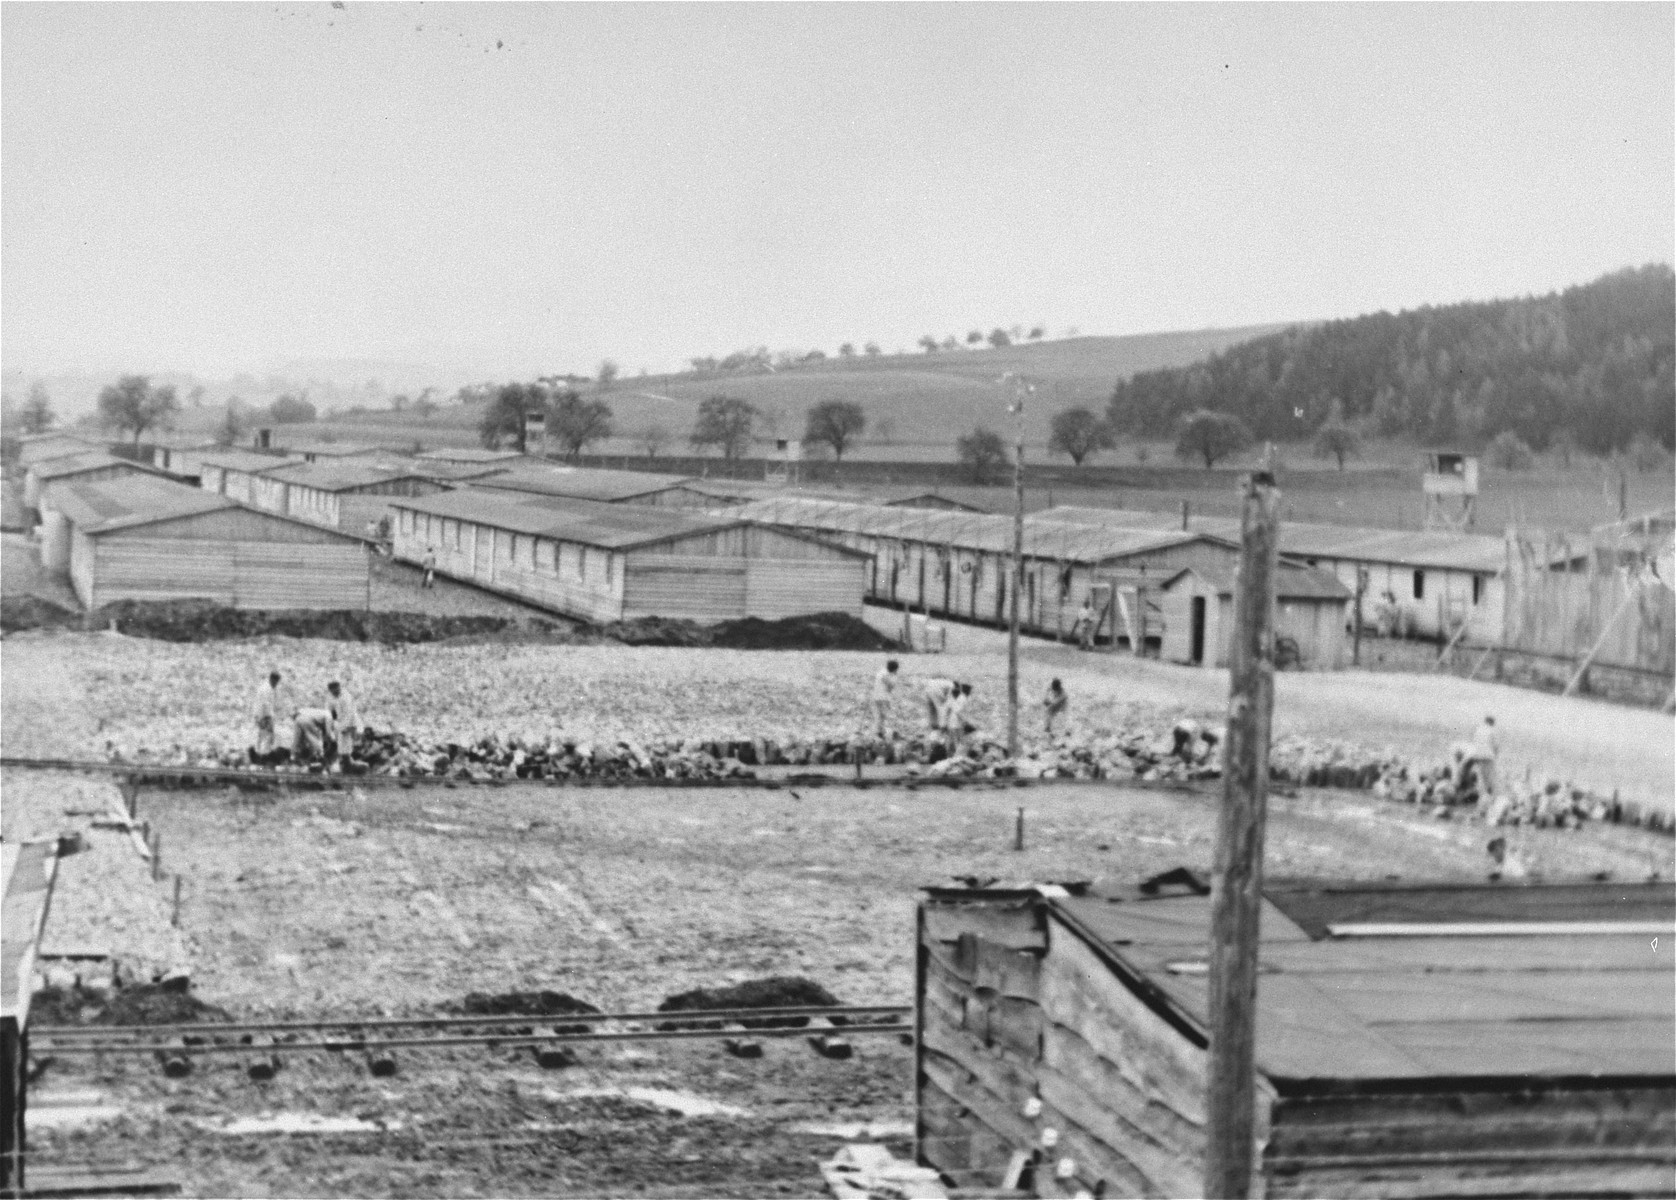 View of the construction of the Gusen I concentration camp